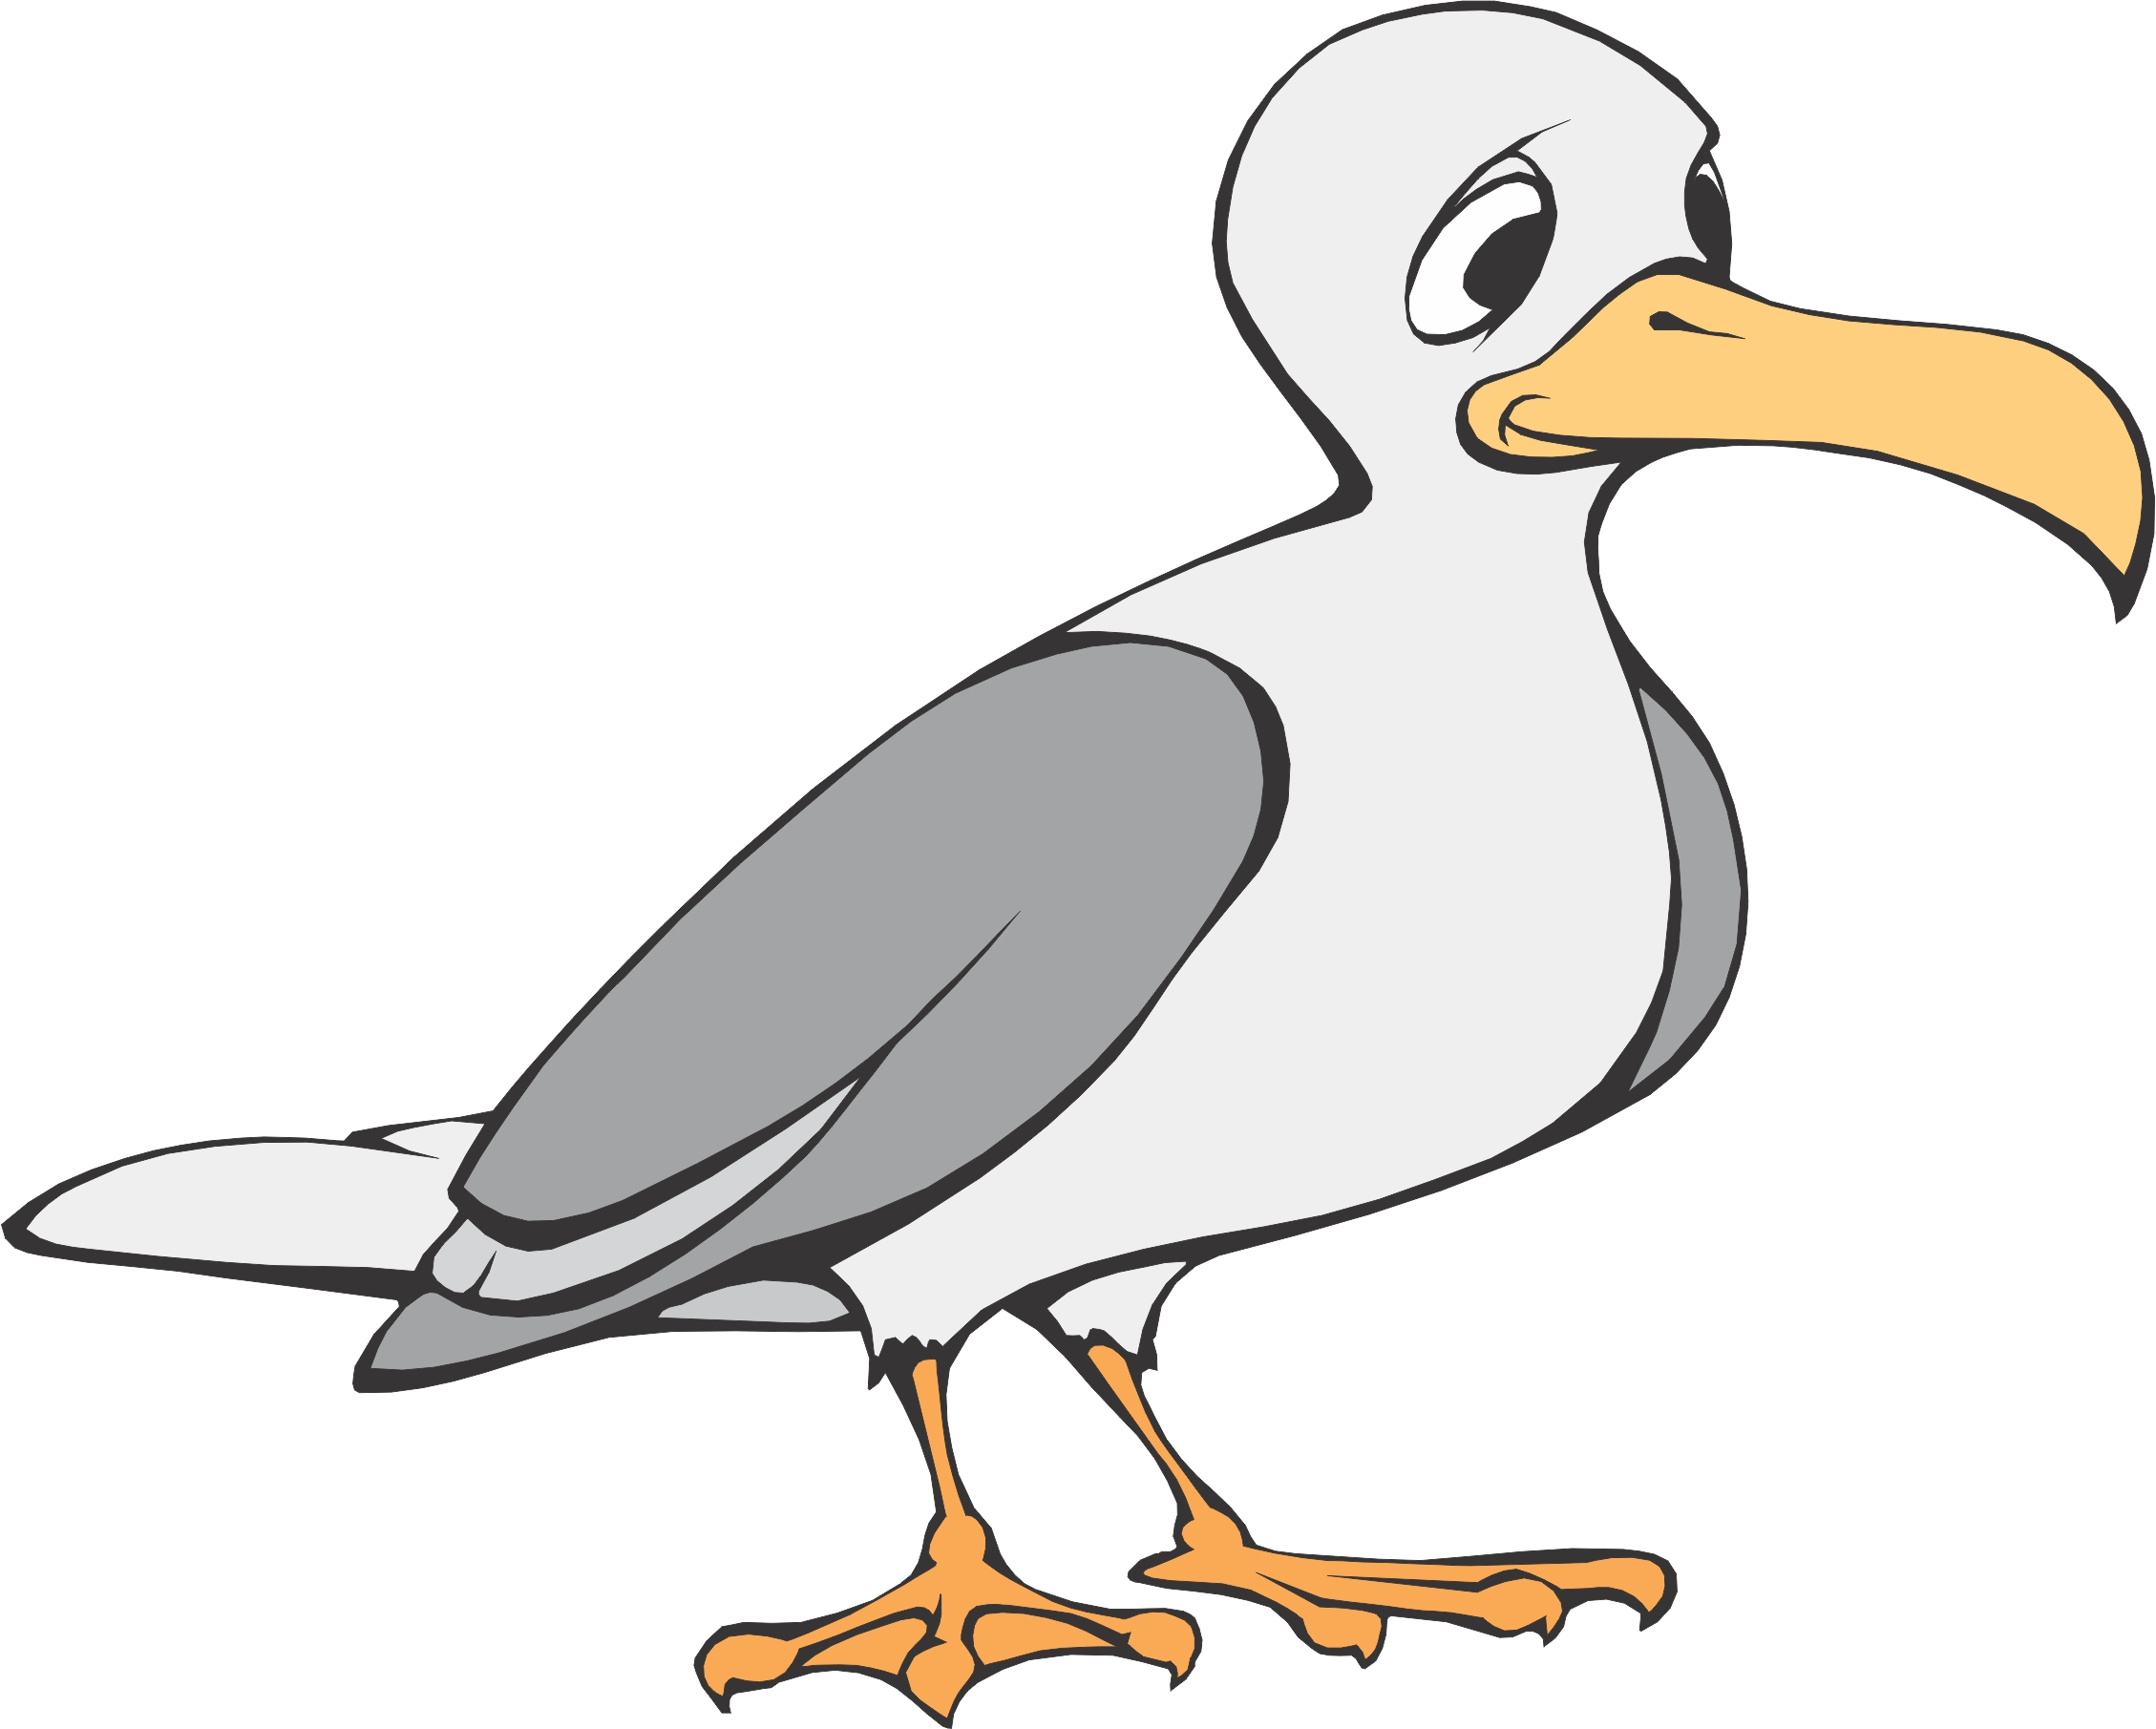 Seagull clipart #8, Download drawings